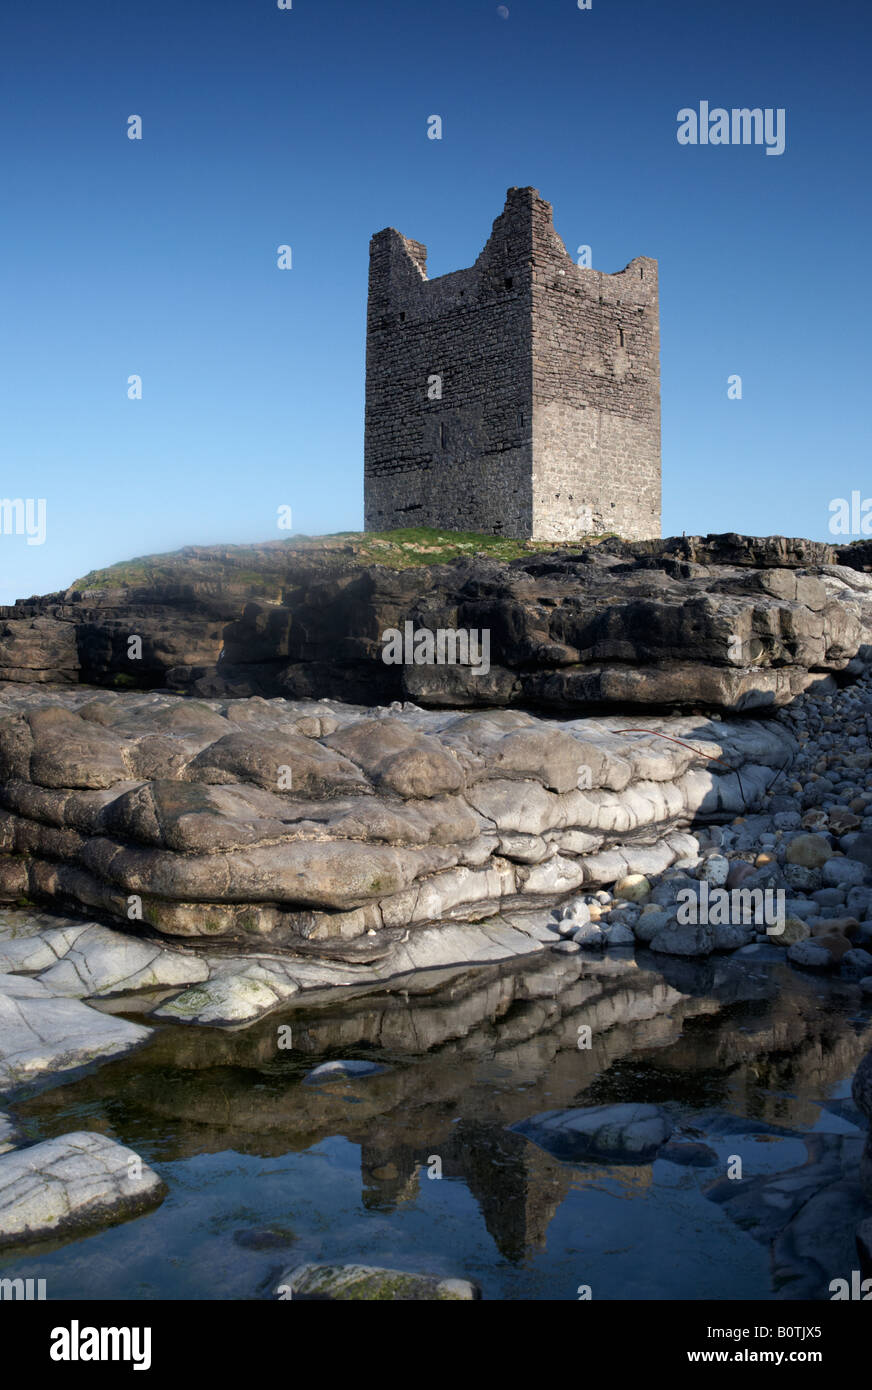 o'dowd roslea roslee castle home of the ODowd chieftains built in 1207 easkey county sligo republic of ireland Stock Photo